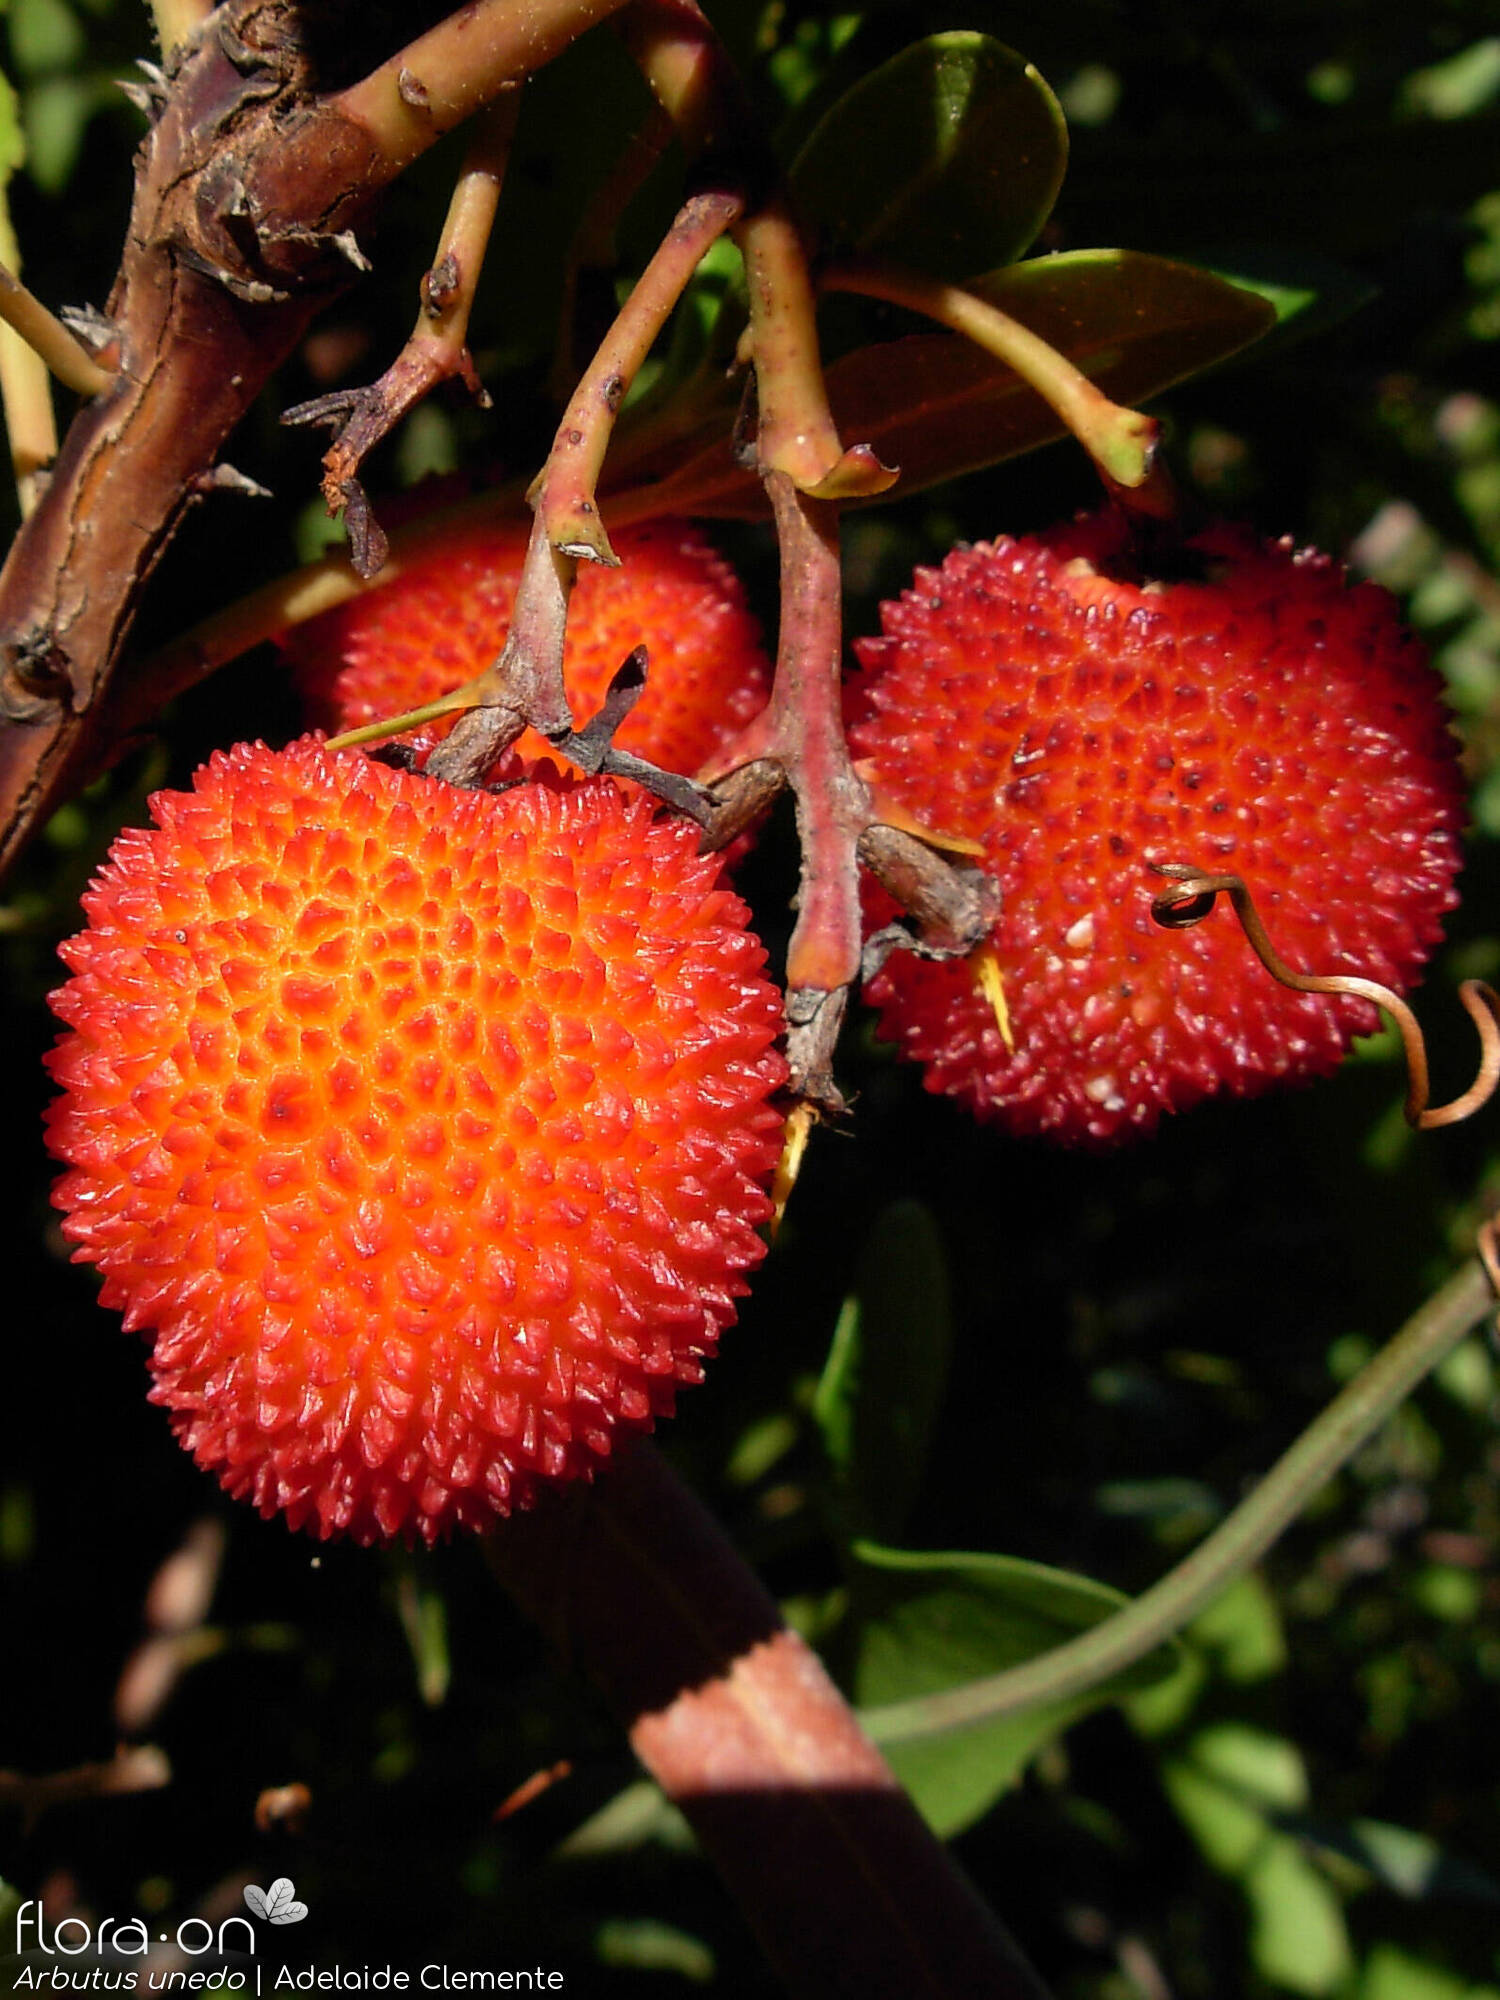 Arbutus unedo - Fruto | Adelaide Clemente; CC BY-NC 4.0